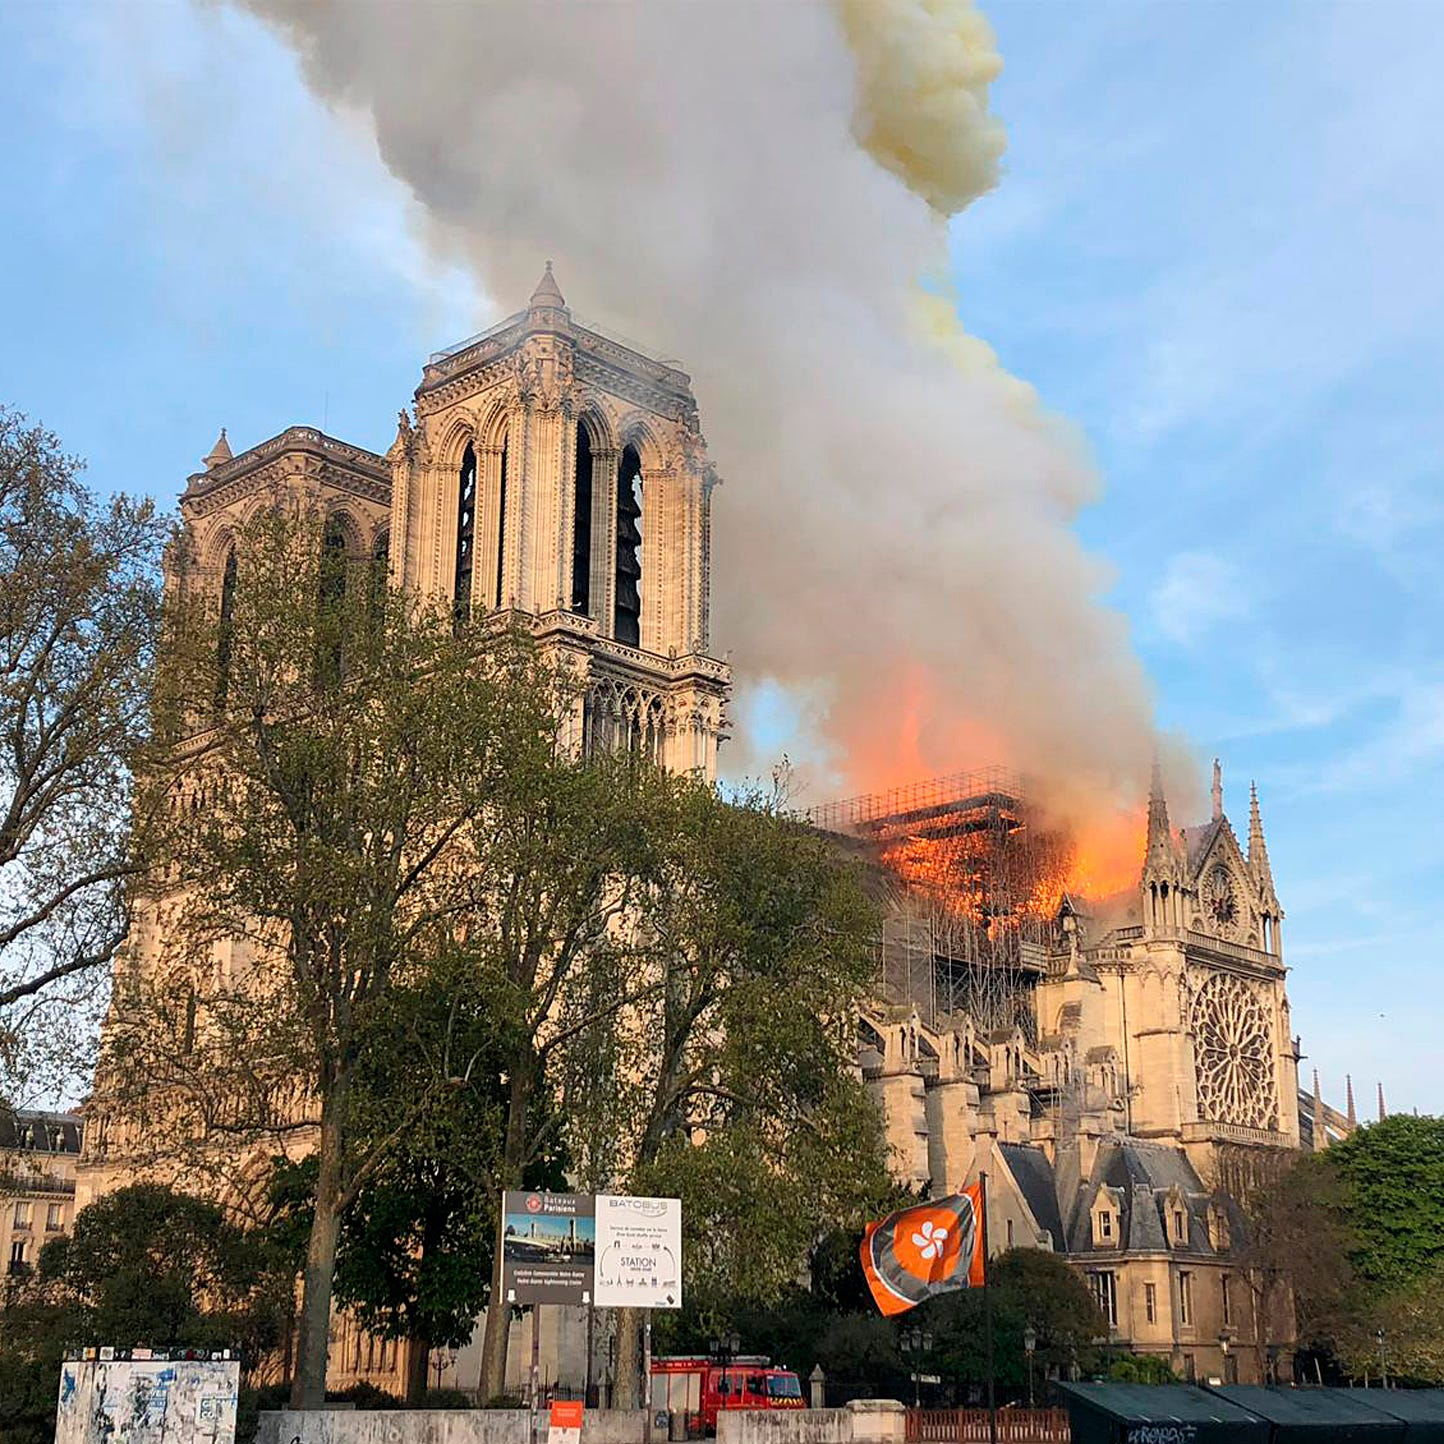 Live: Fire breaks out at top of Notre Dame Cathedral in Paris